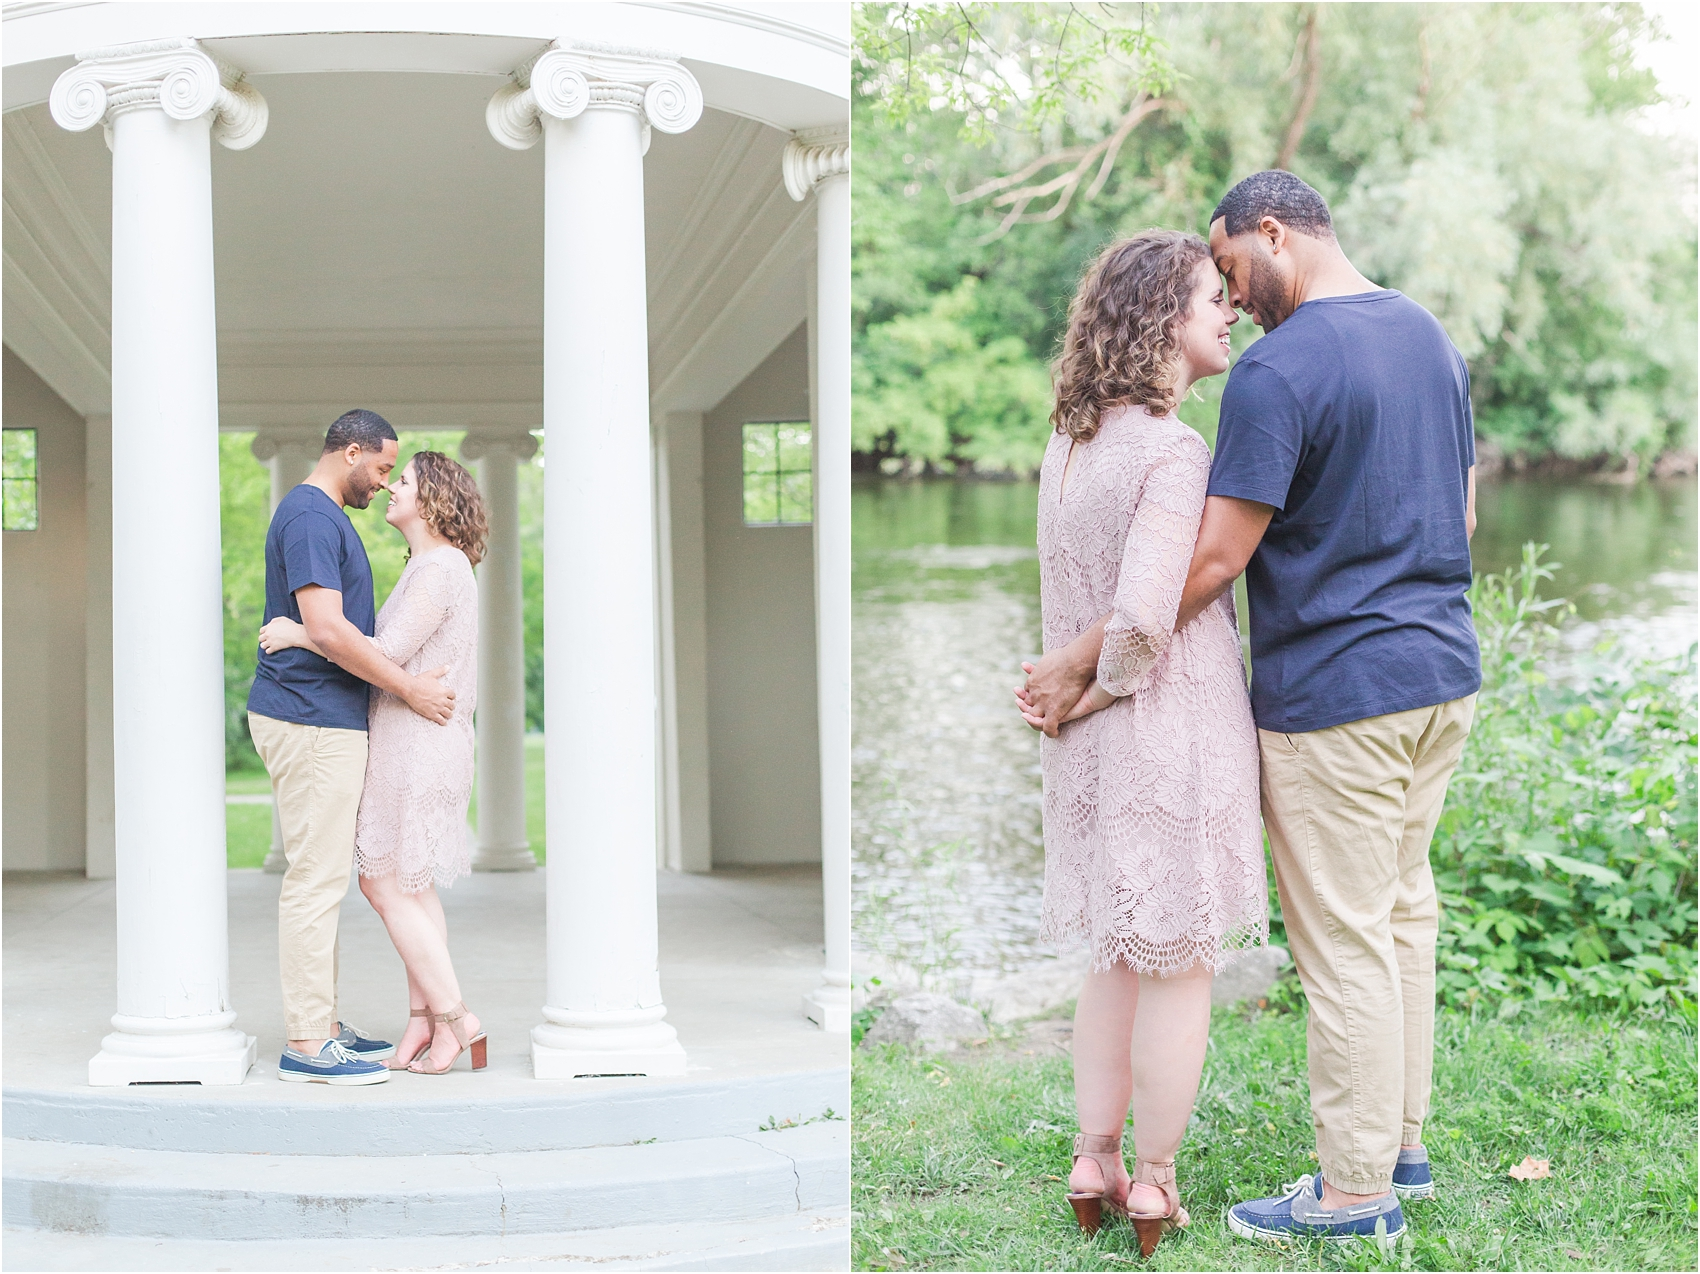 romantic-fun-university-of-michigan-engagement-photos-in-ann-arbor-mi-by-courtney-carolyn-photography_0037.jpg